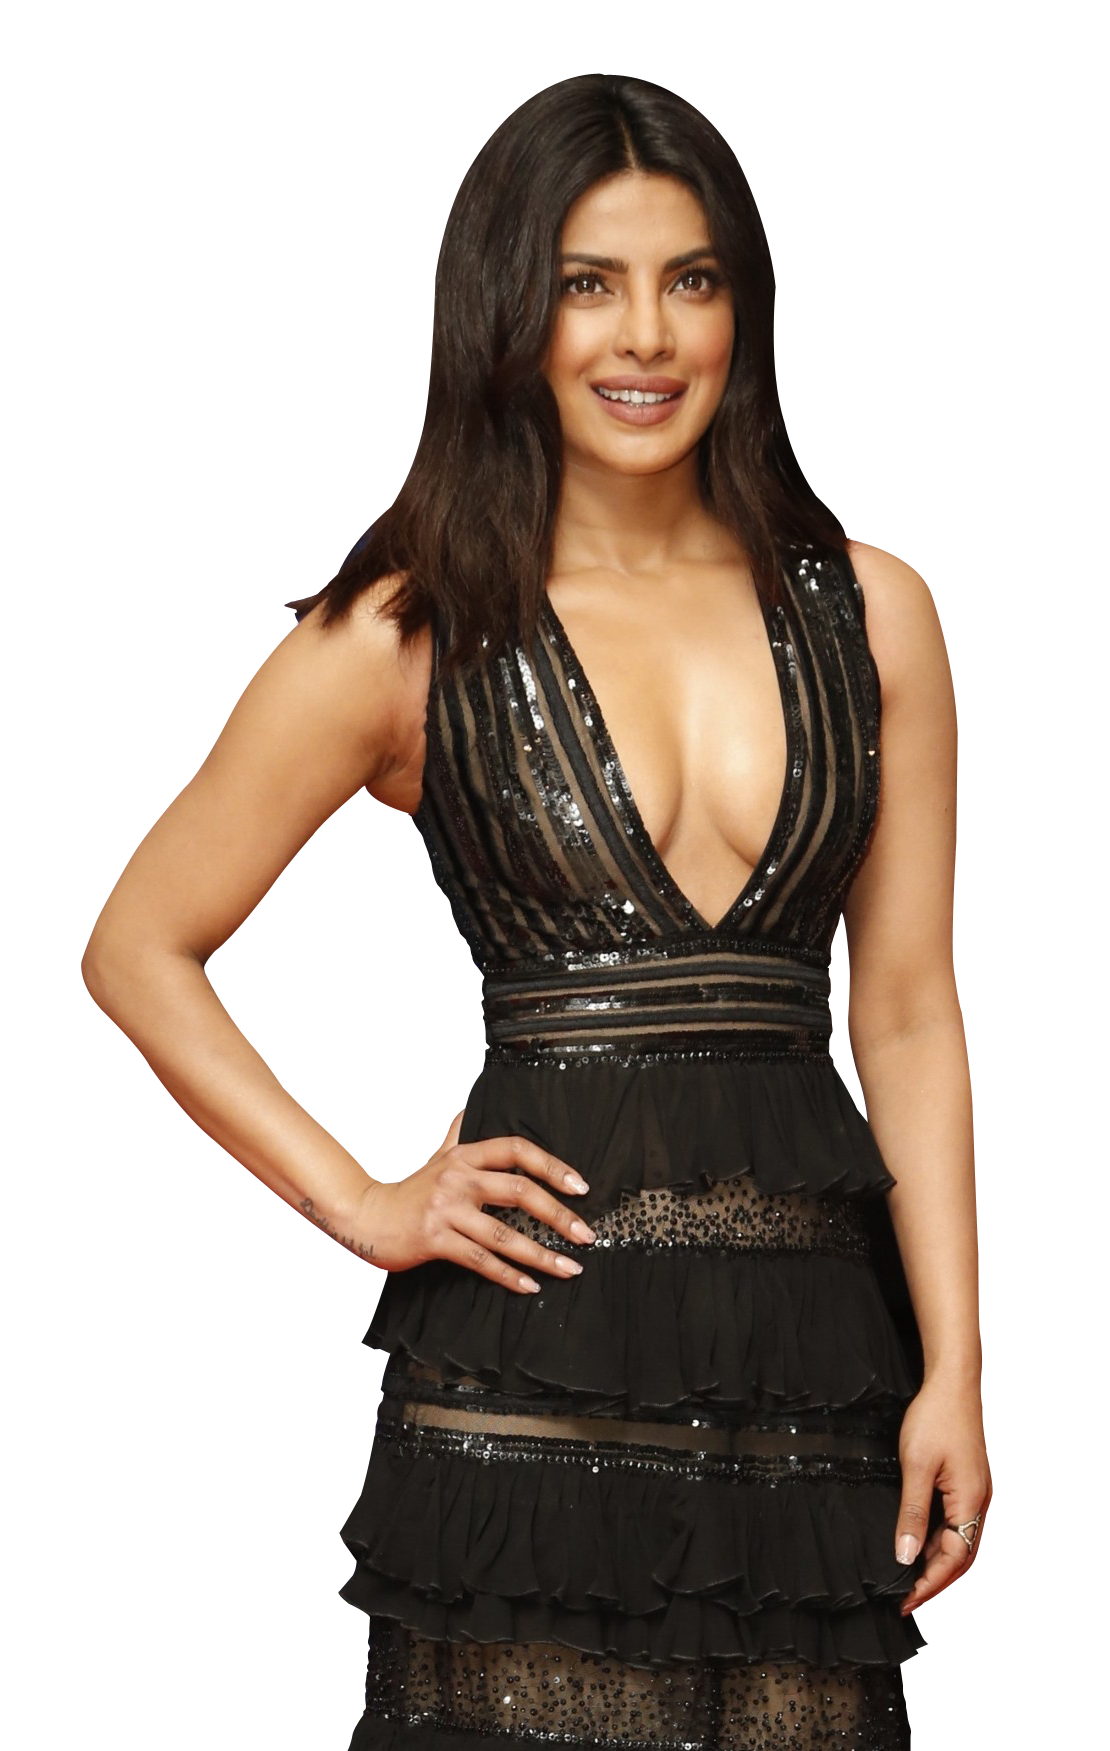 Priyanka Film Bollywood Chopra Actor Free Transparent Image HQ PNG Image